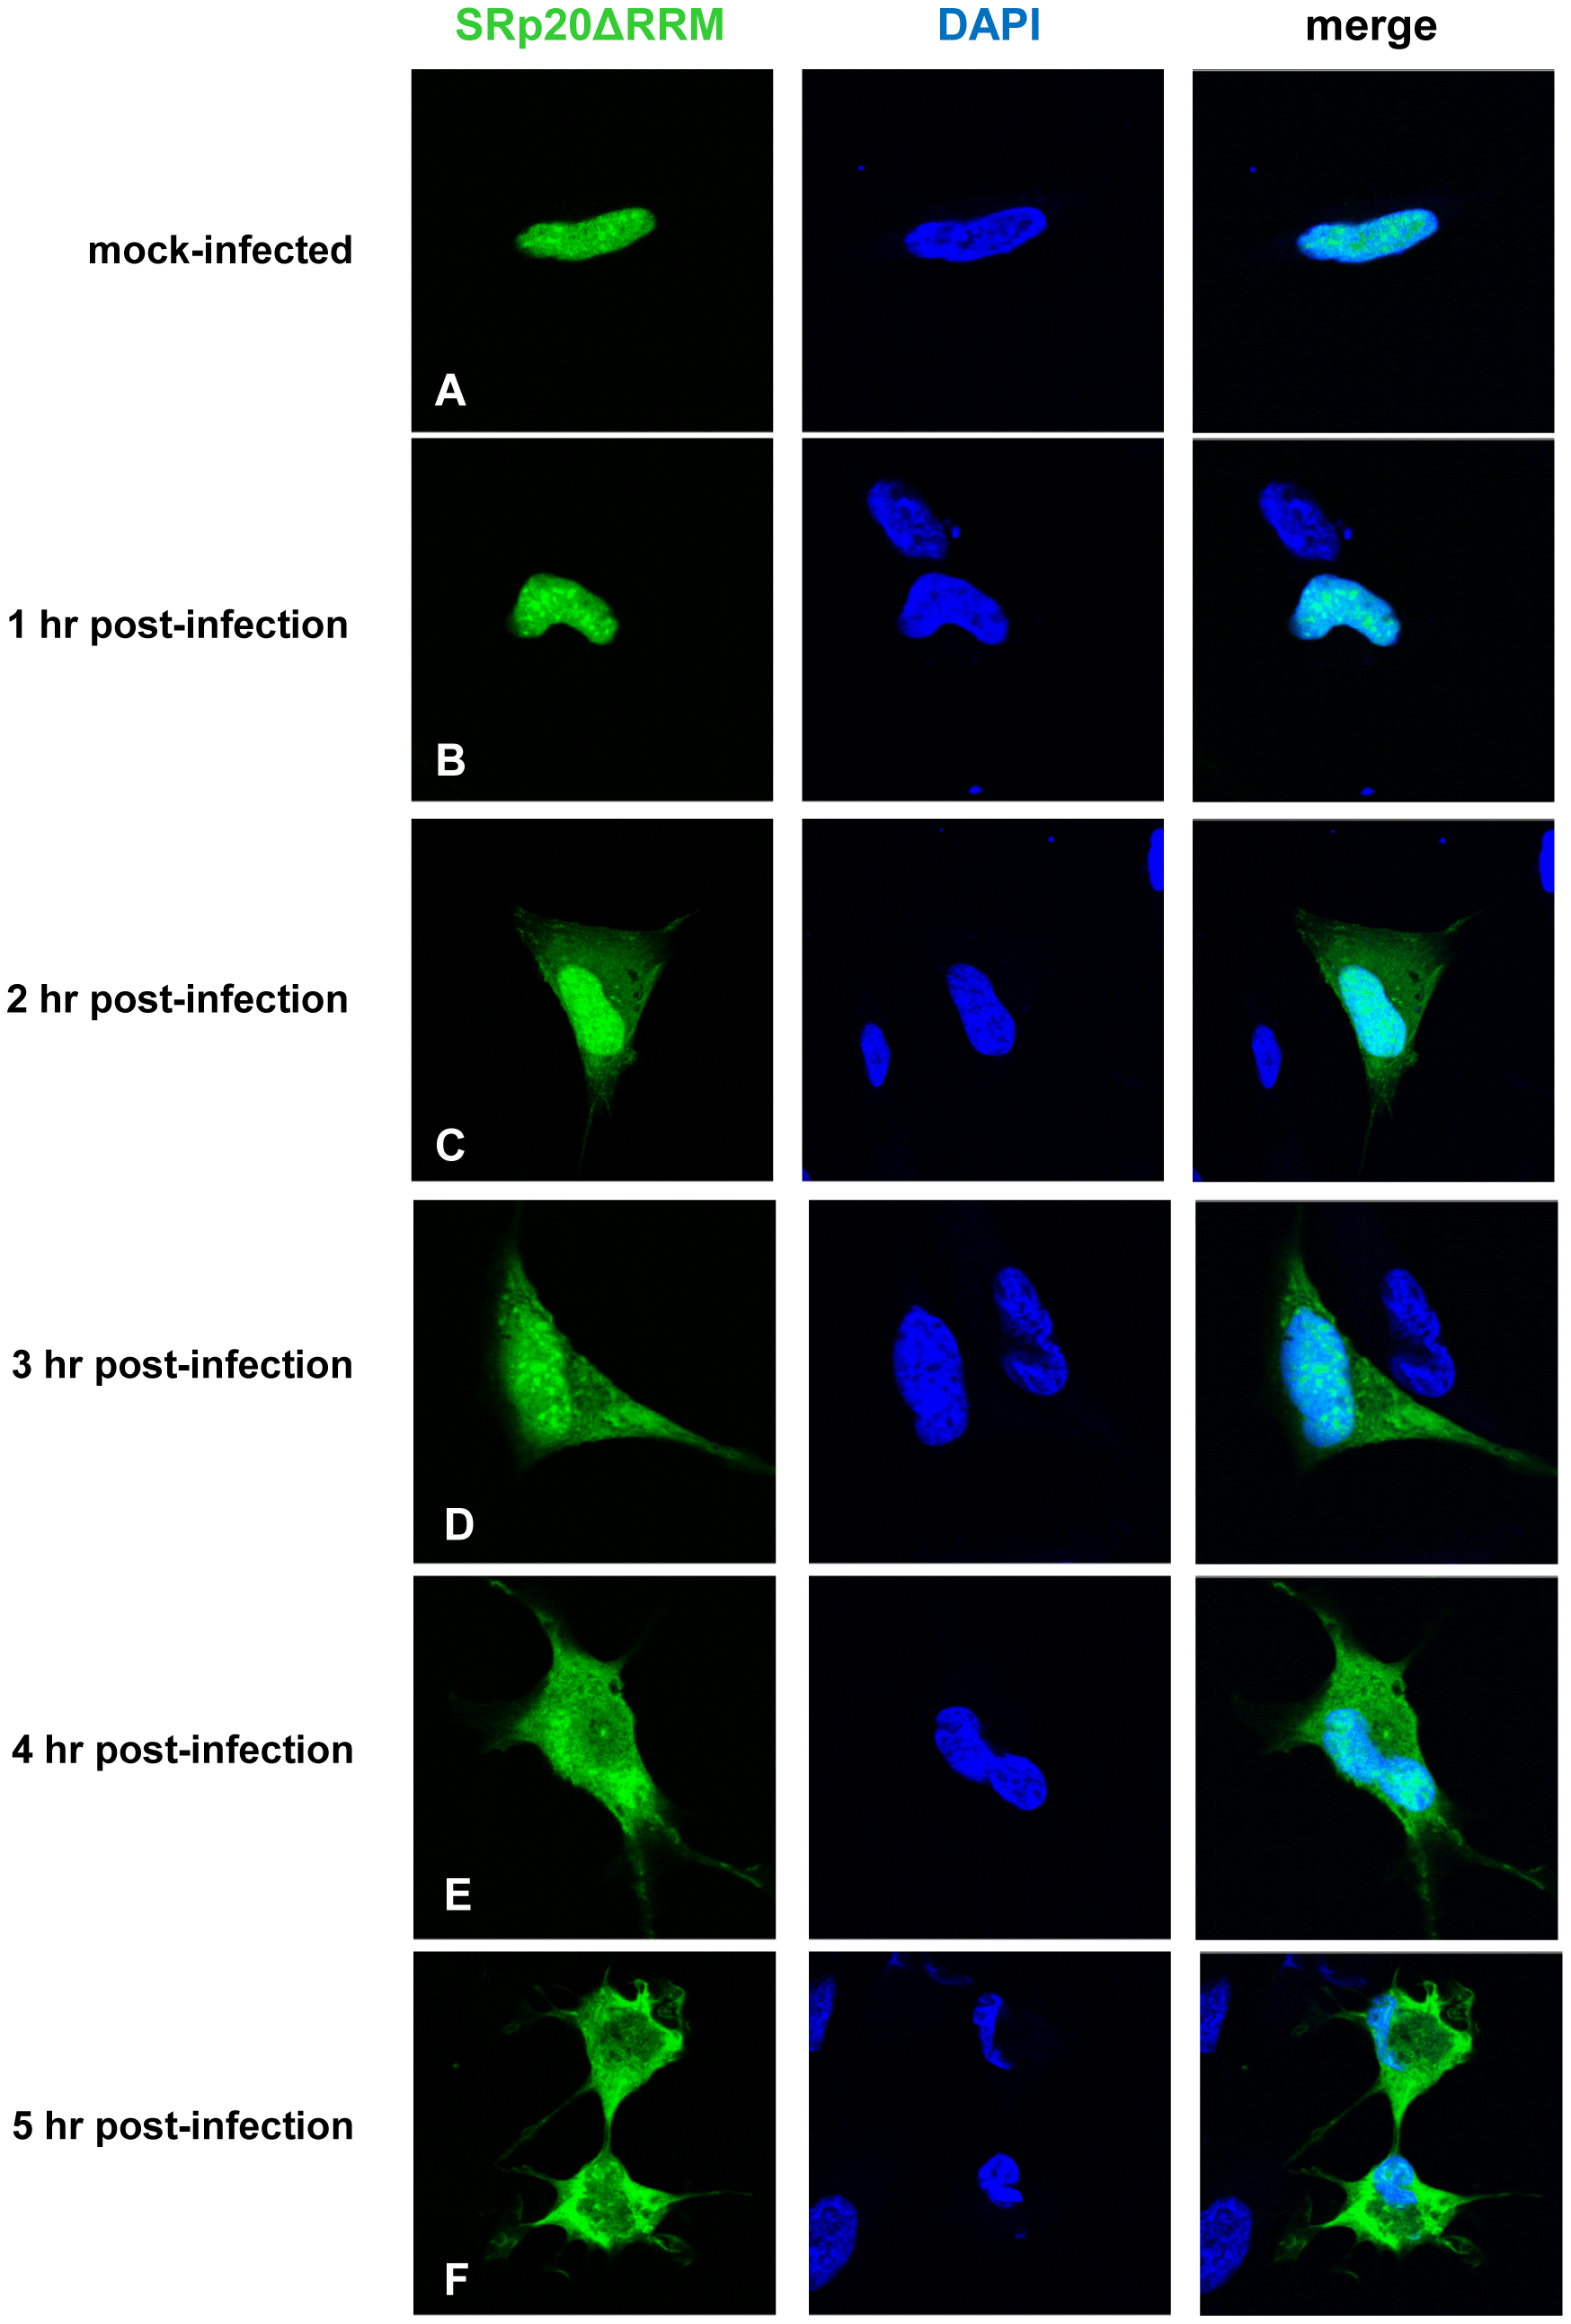 SRp20ΔRRM re-localization from the nucleus to the cytoplasm of SK-N-SH cells during poliovirus infection.